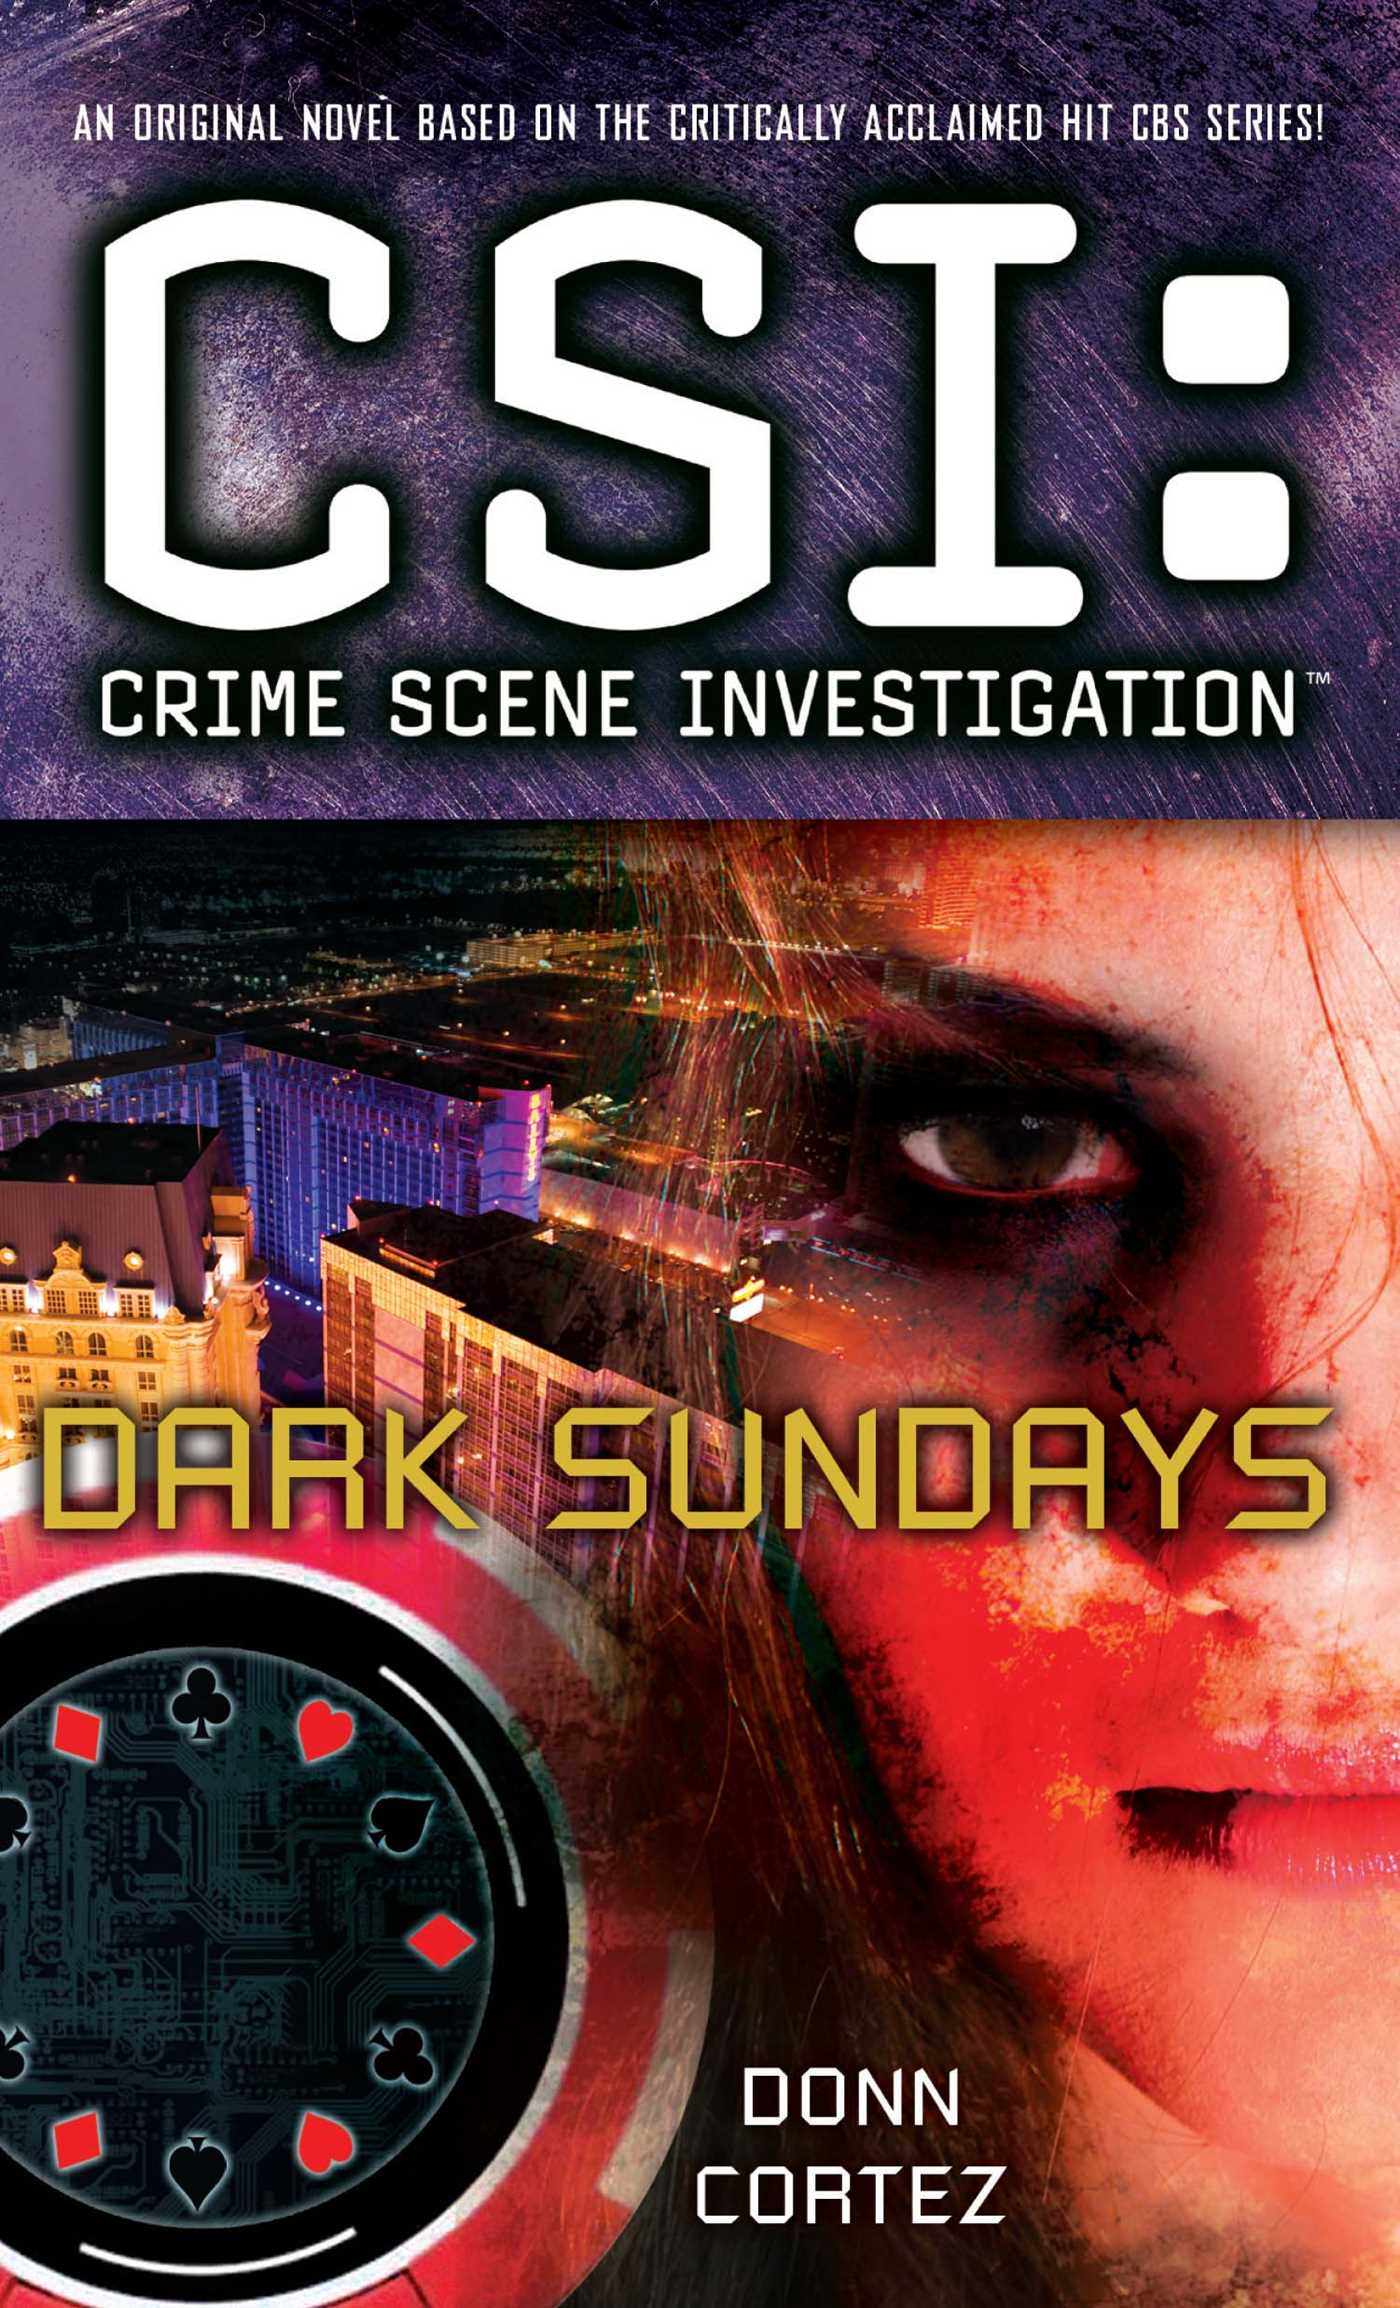 Csi crime scene investigation dark sundays 9781439169308 hr